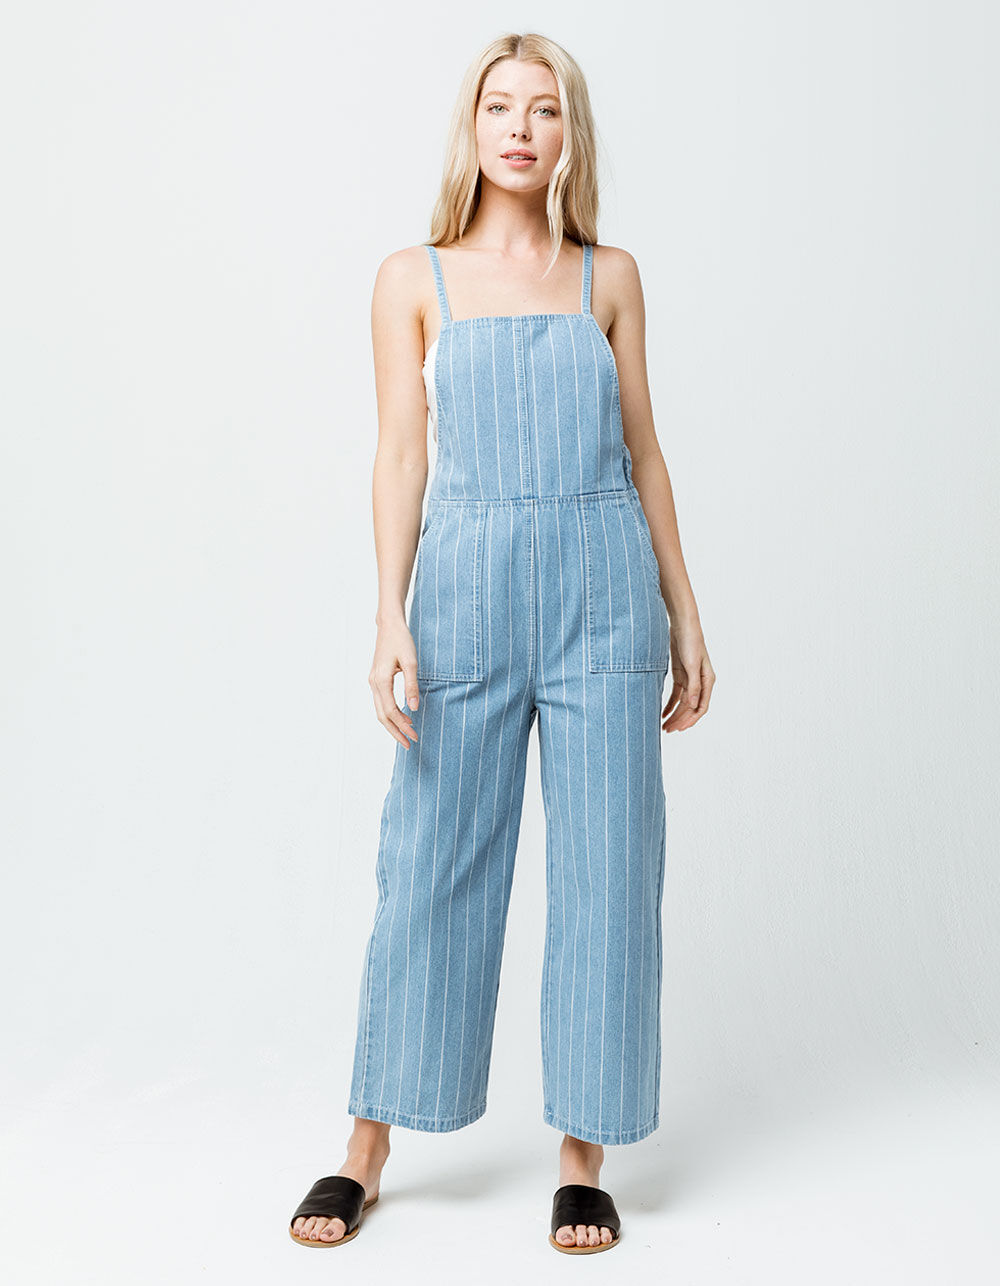 RVCA Called It Striped Denim Jumpsuit